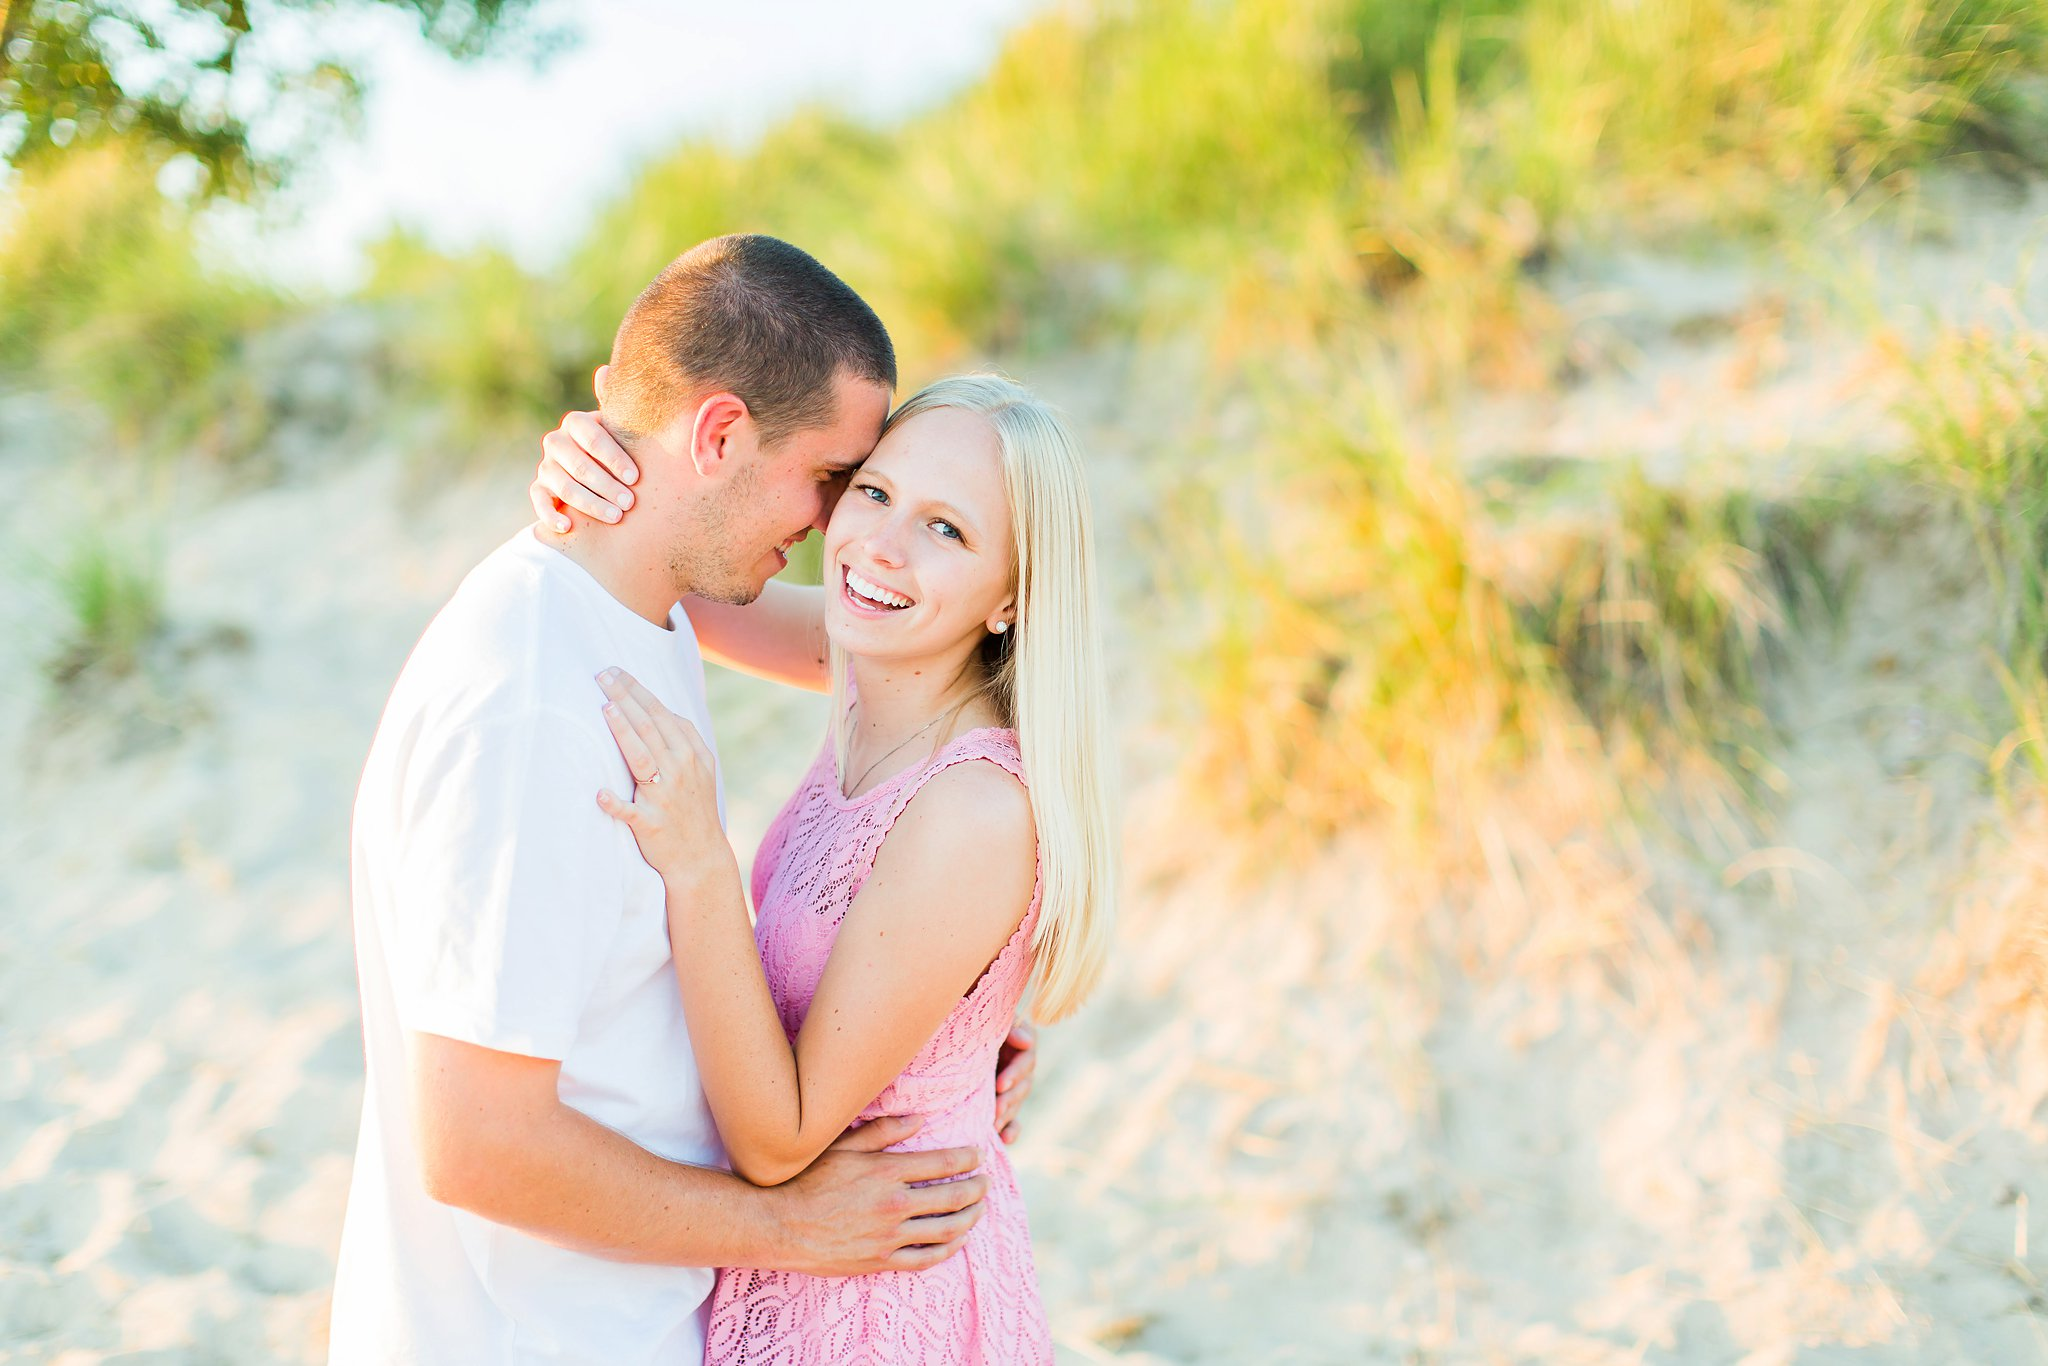 Silver Lake Engagement Photos Michigan Wedding Photographer Megan Kelsey Photography-0054.jpg